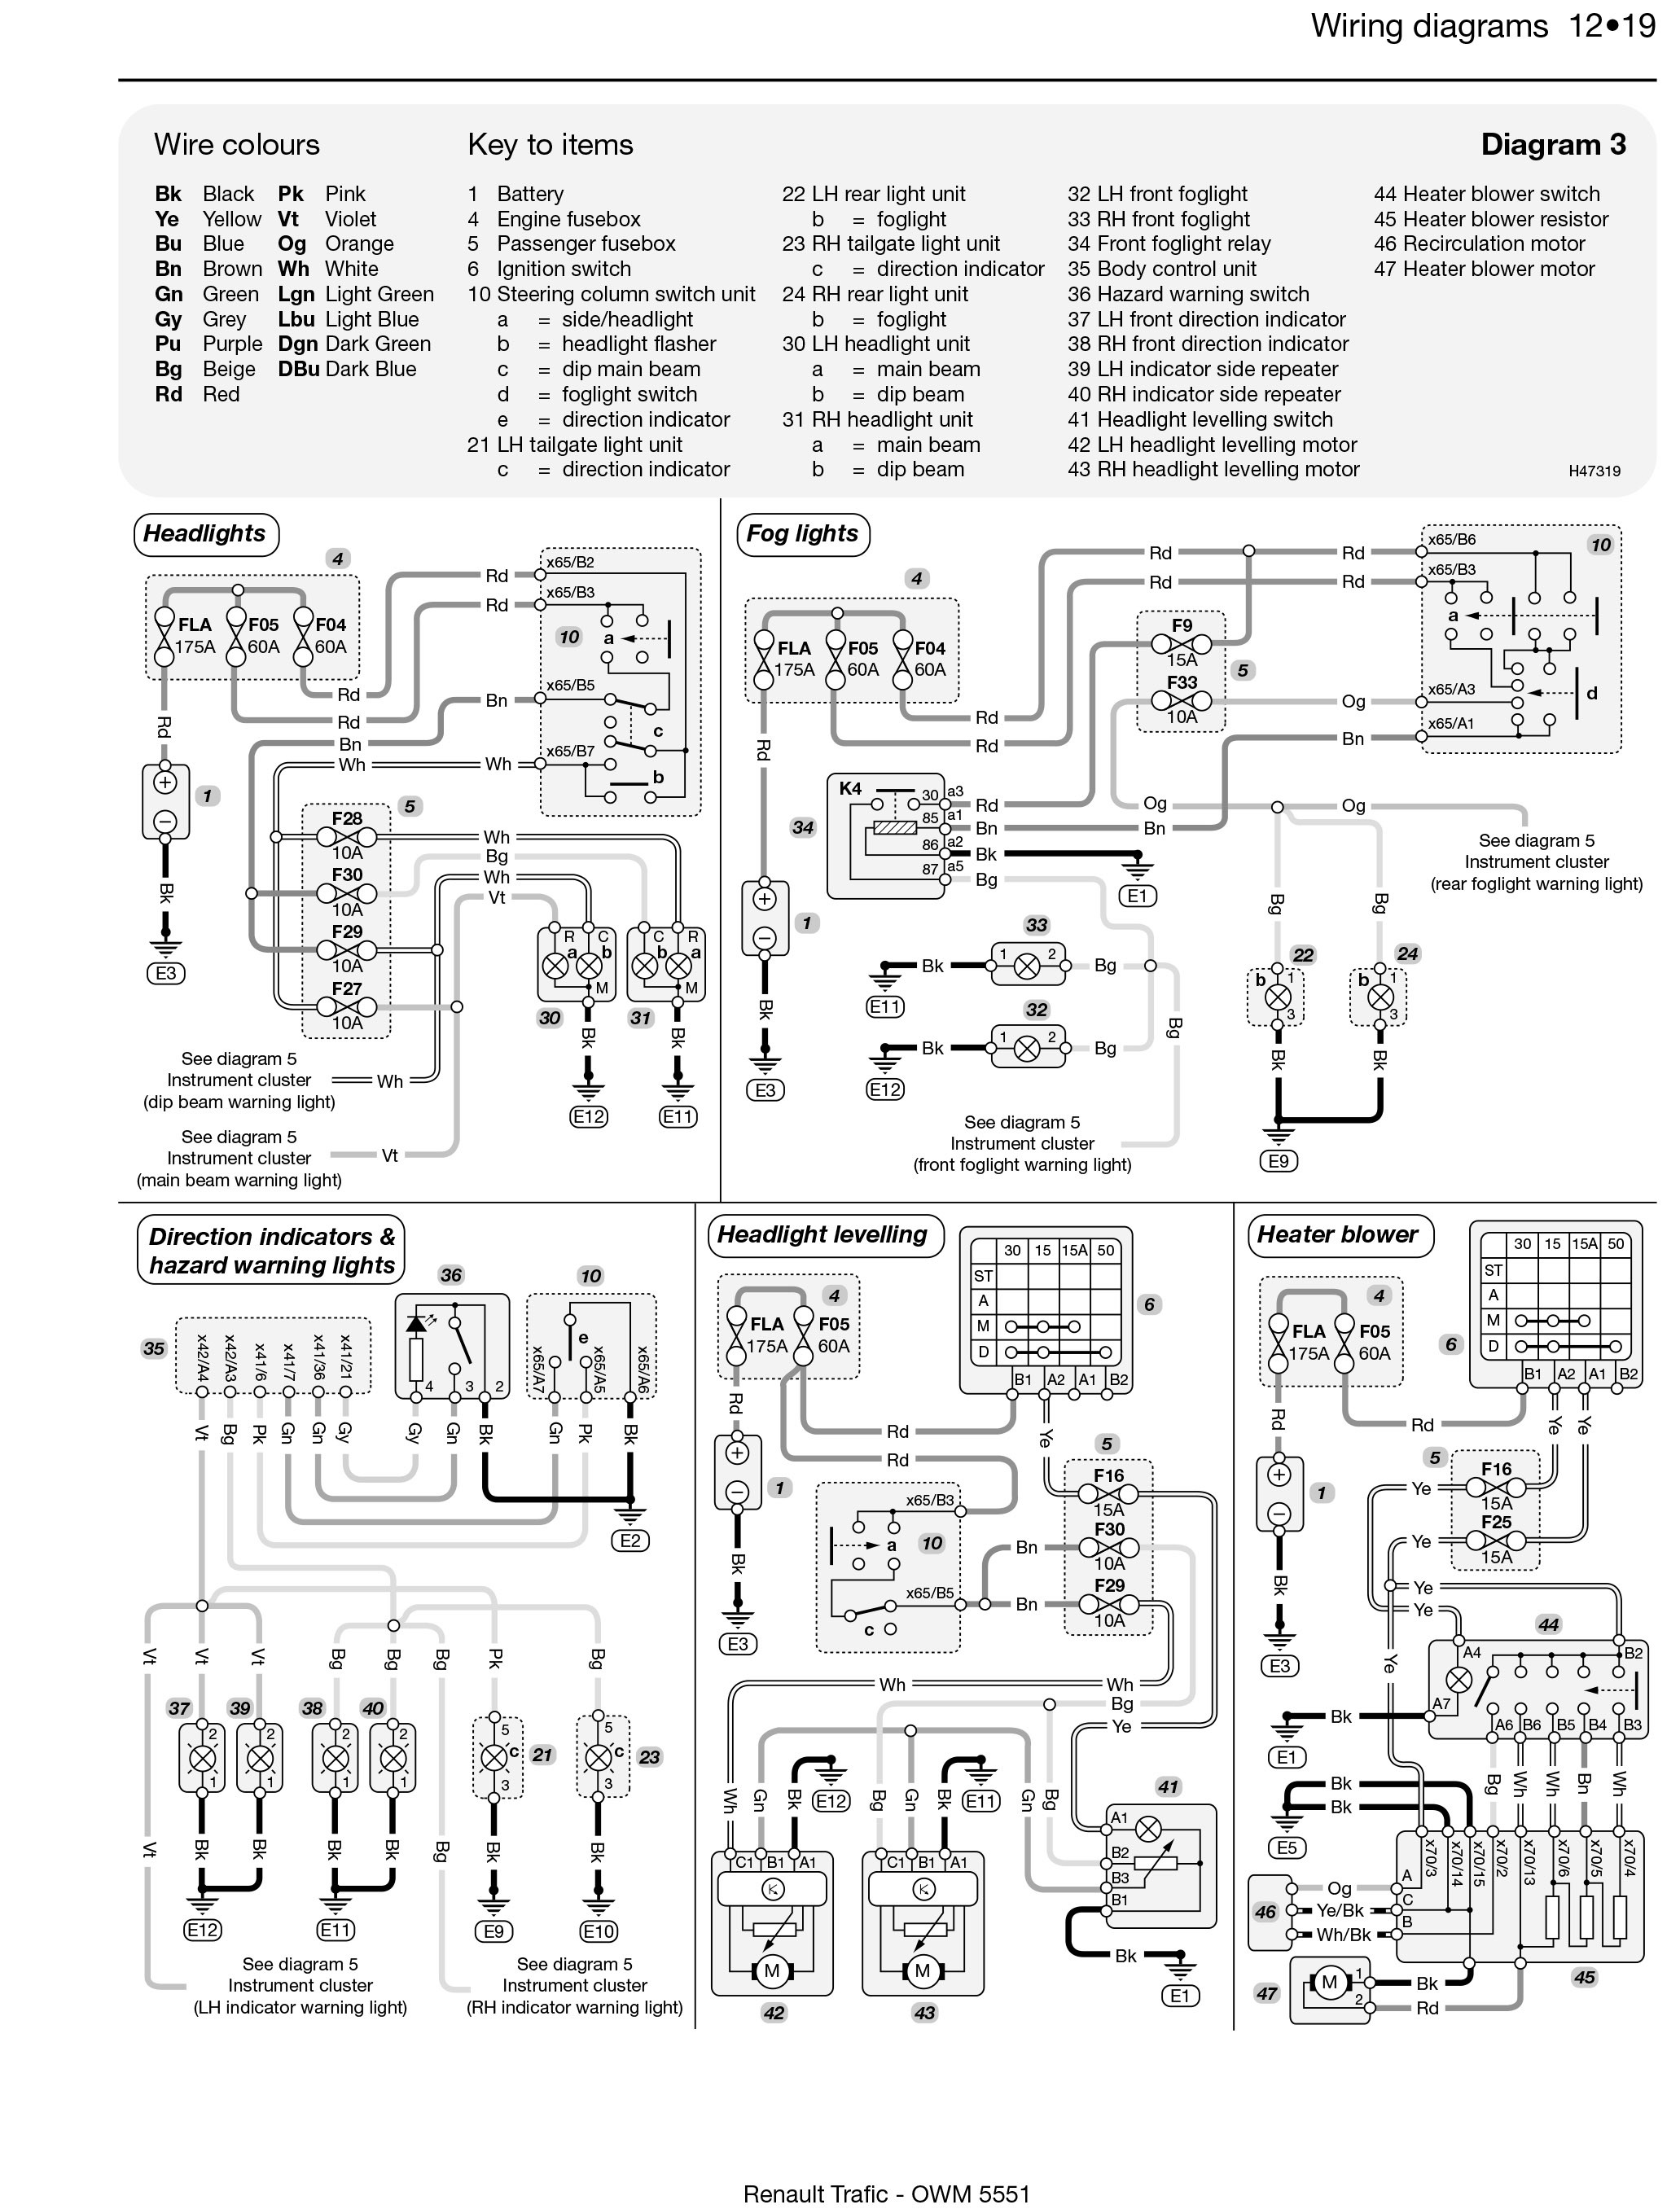 Renault Trafic Air Con Wiring Diagram Trusted Diagrams Circuit Connection U2022 Rh Wiringdiagraminc Today 2017